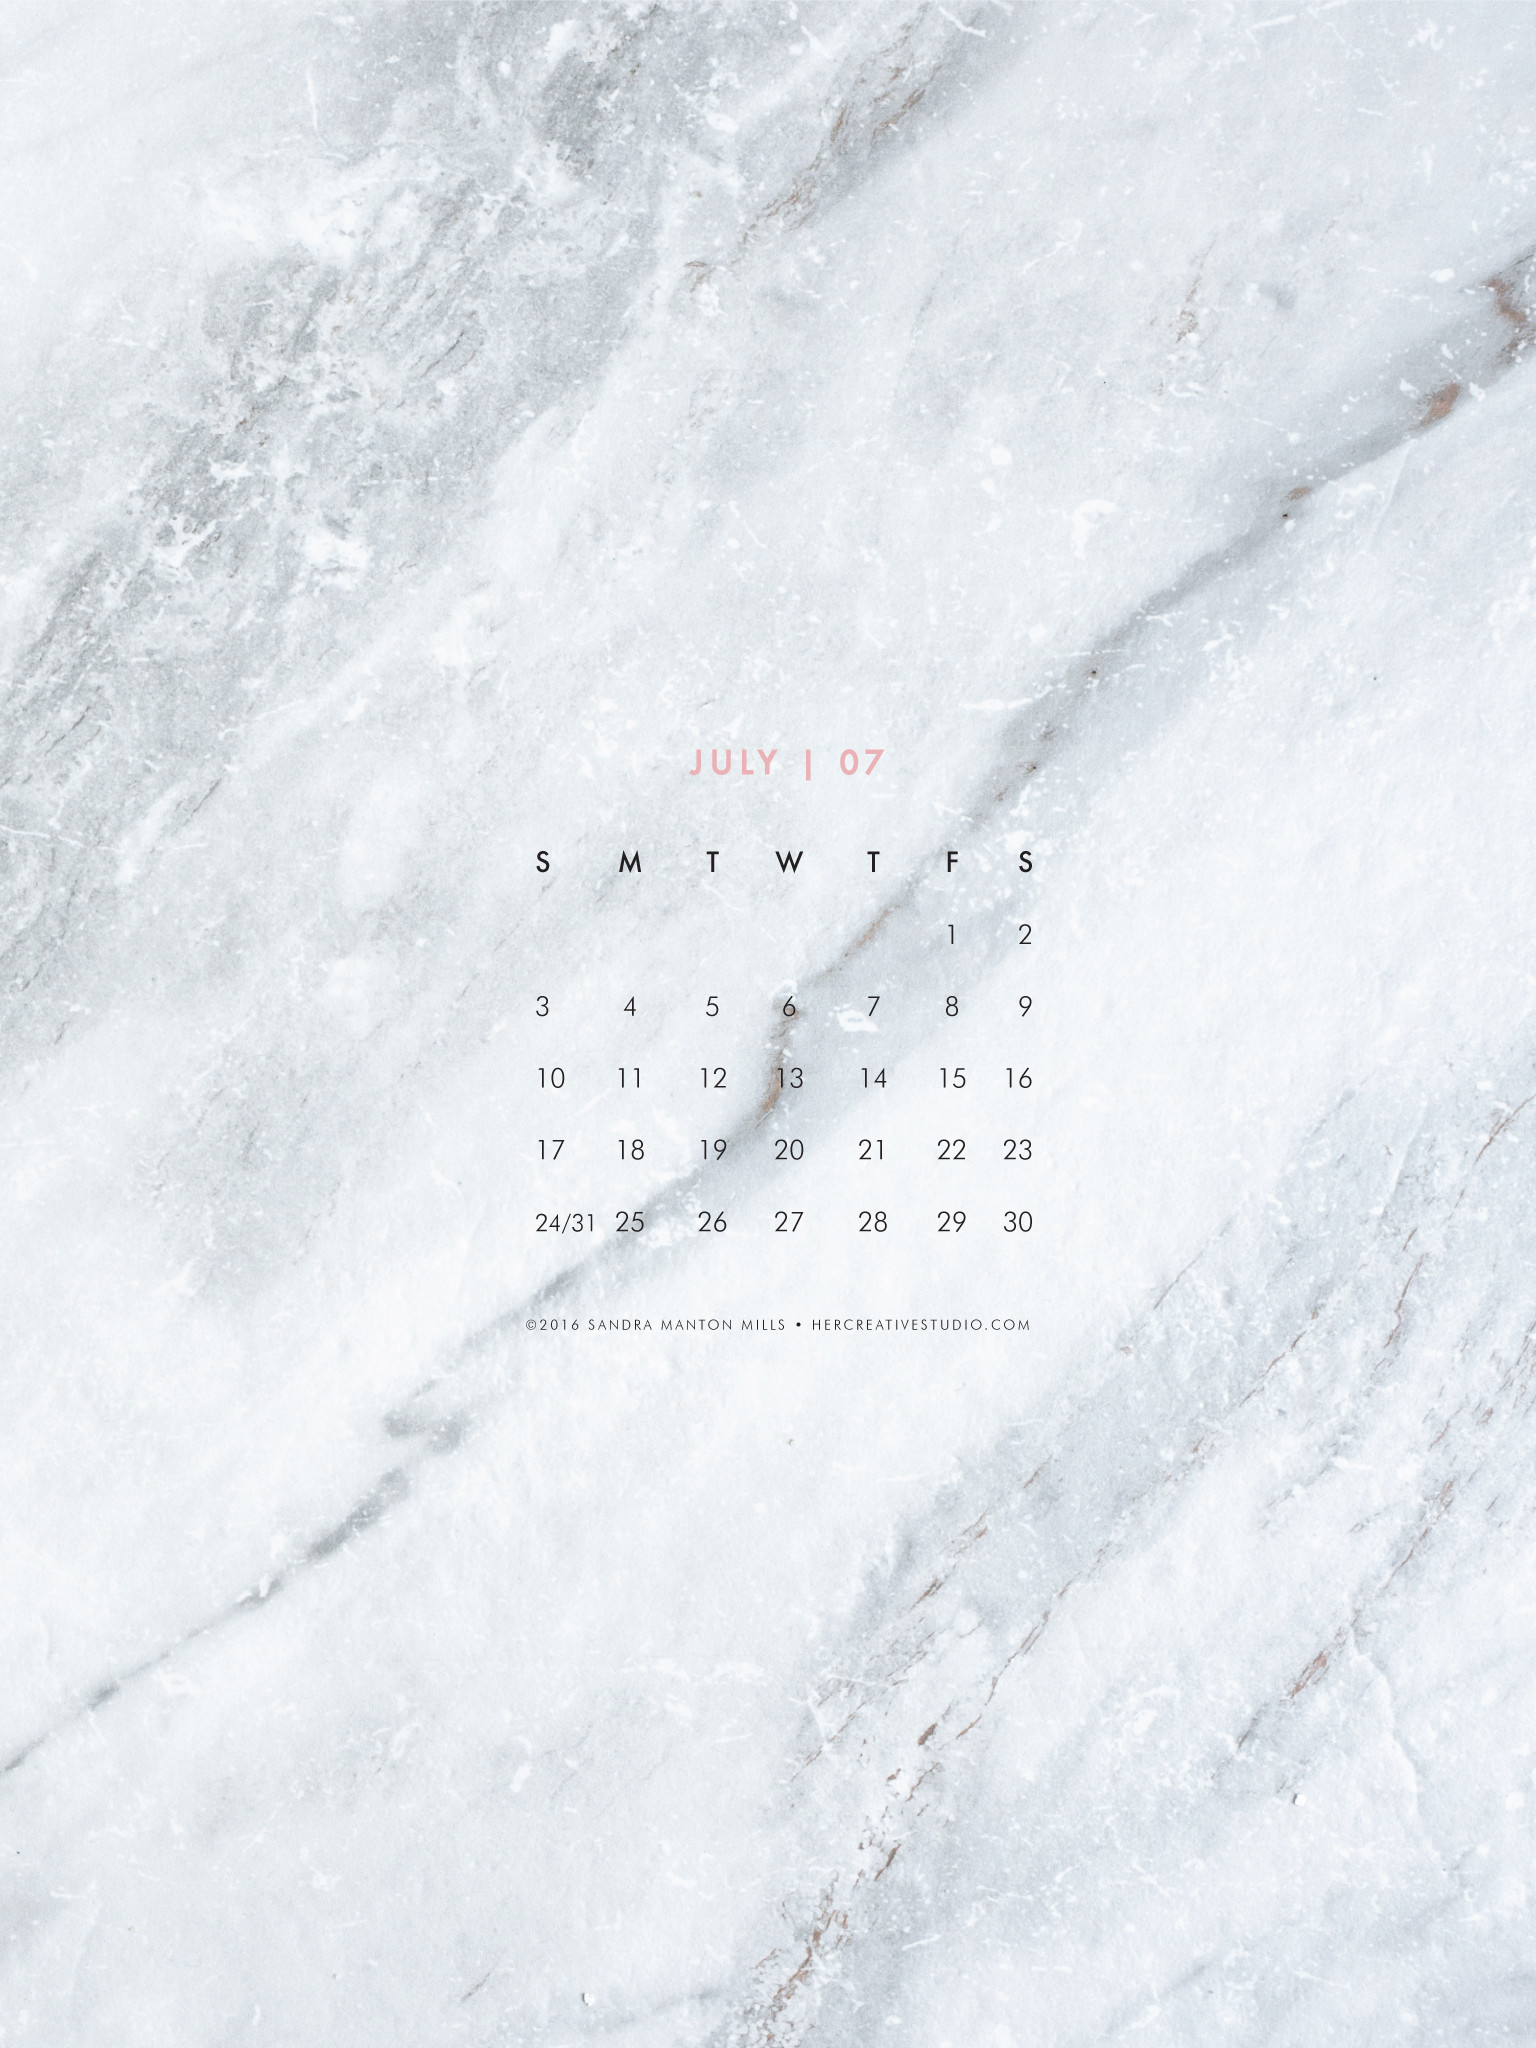 1536x2048 3371x1913 computer desktop calendar 2018. desktop wallpapers calendar march  2018 48 pictures . computer desktop calendar 2018. wallpaper january .